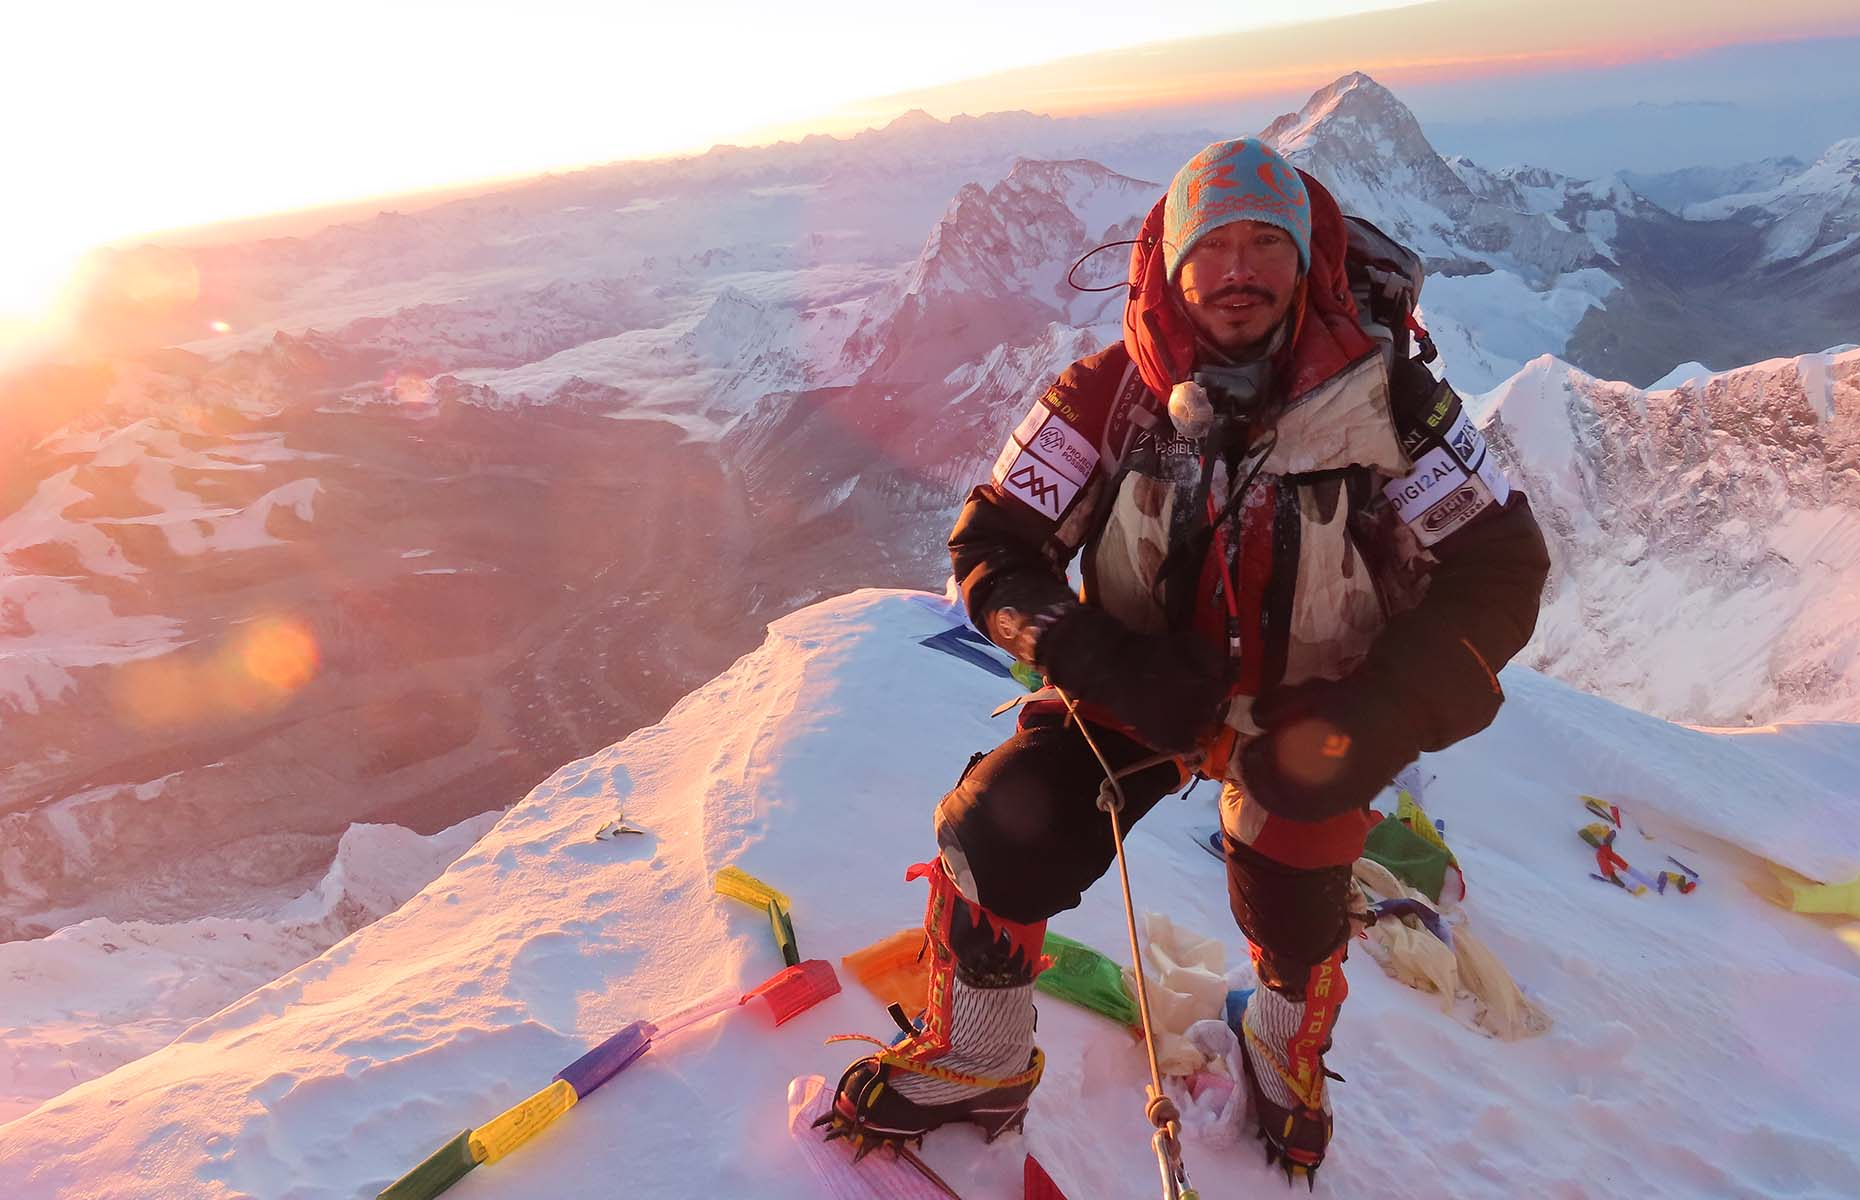 Nims on the summit of Everest during Project Possible